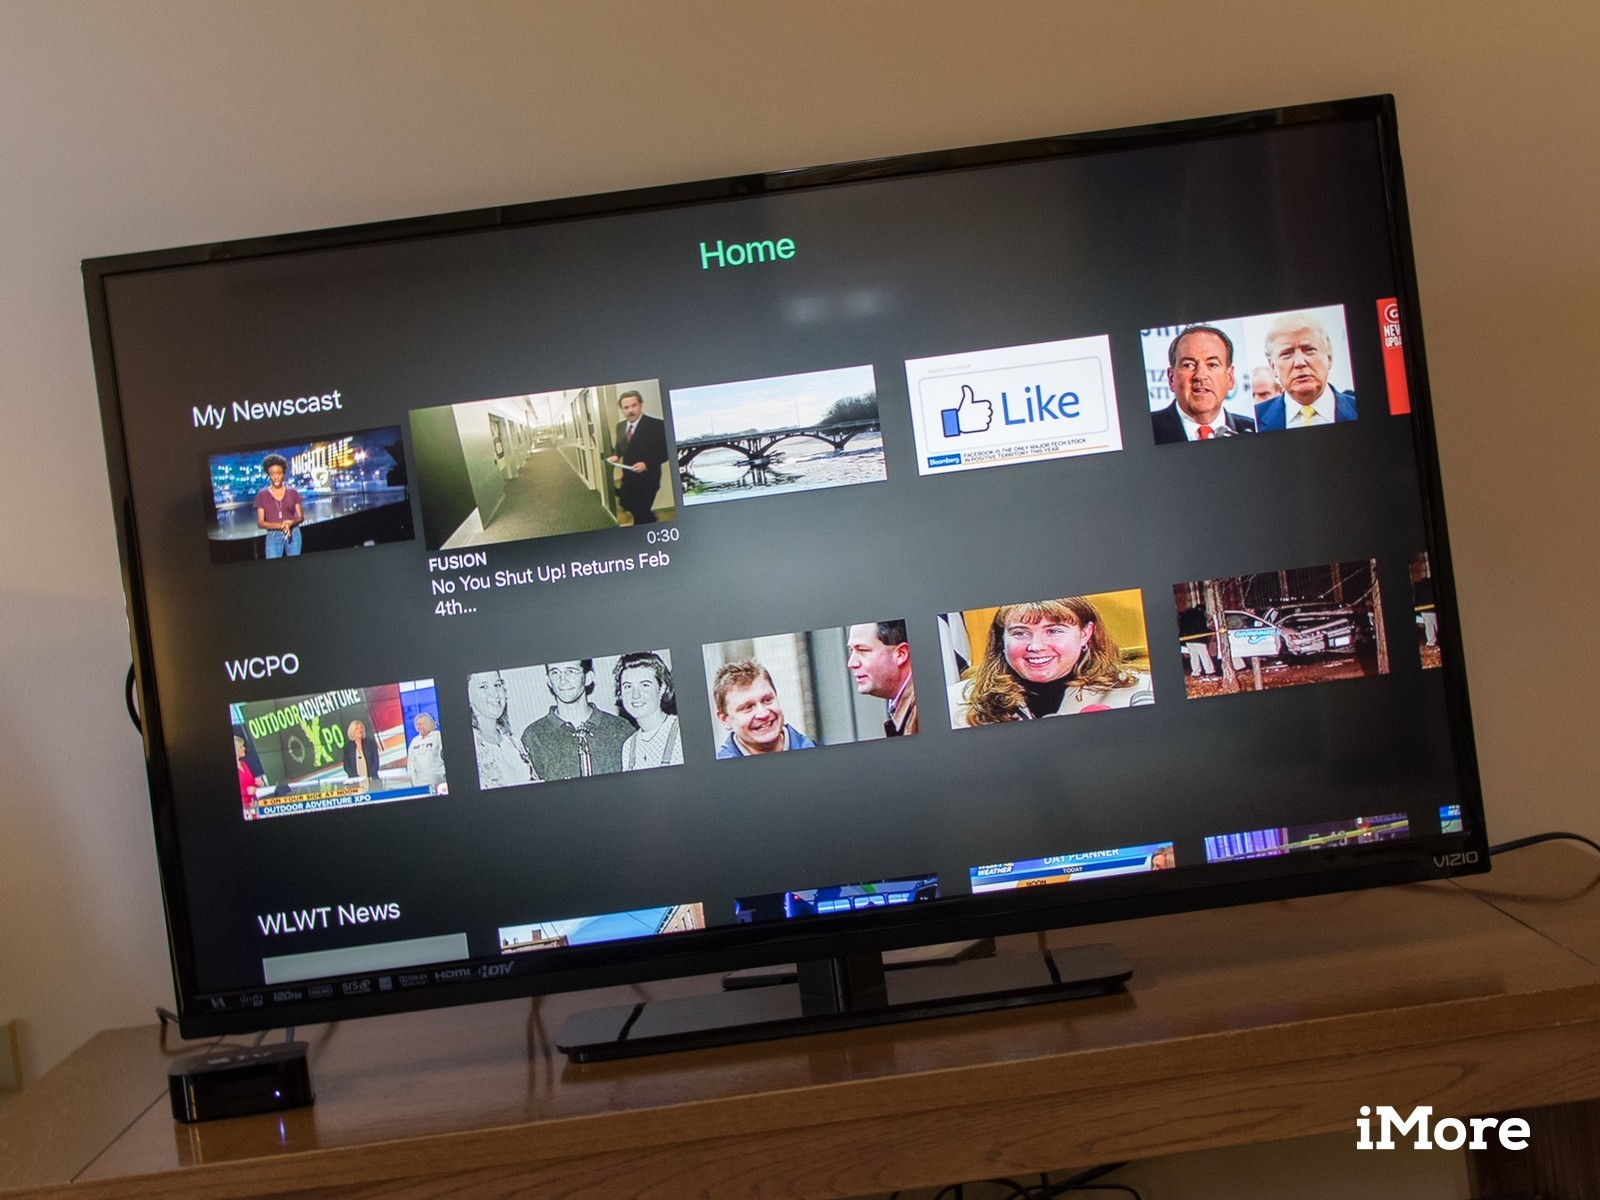 Watchup brings its custom newscasts to the Apple TV